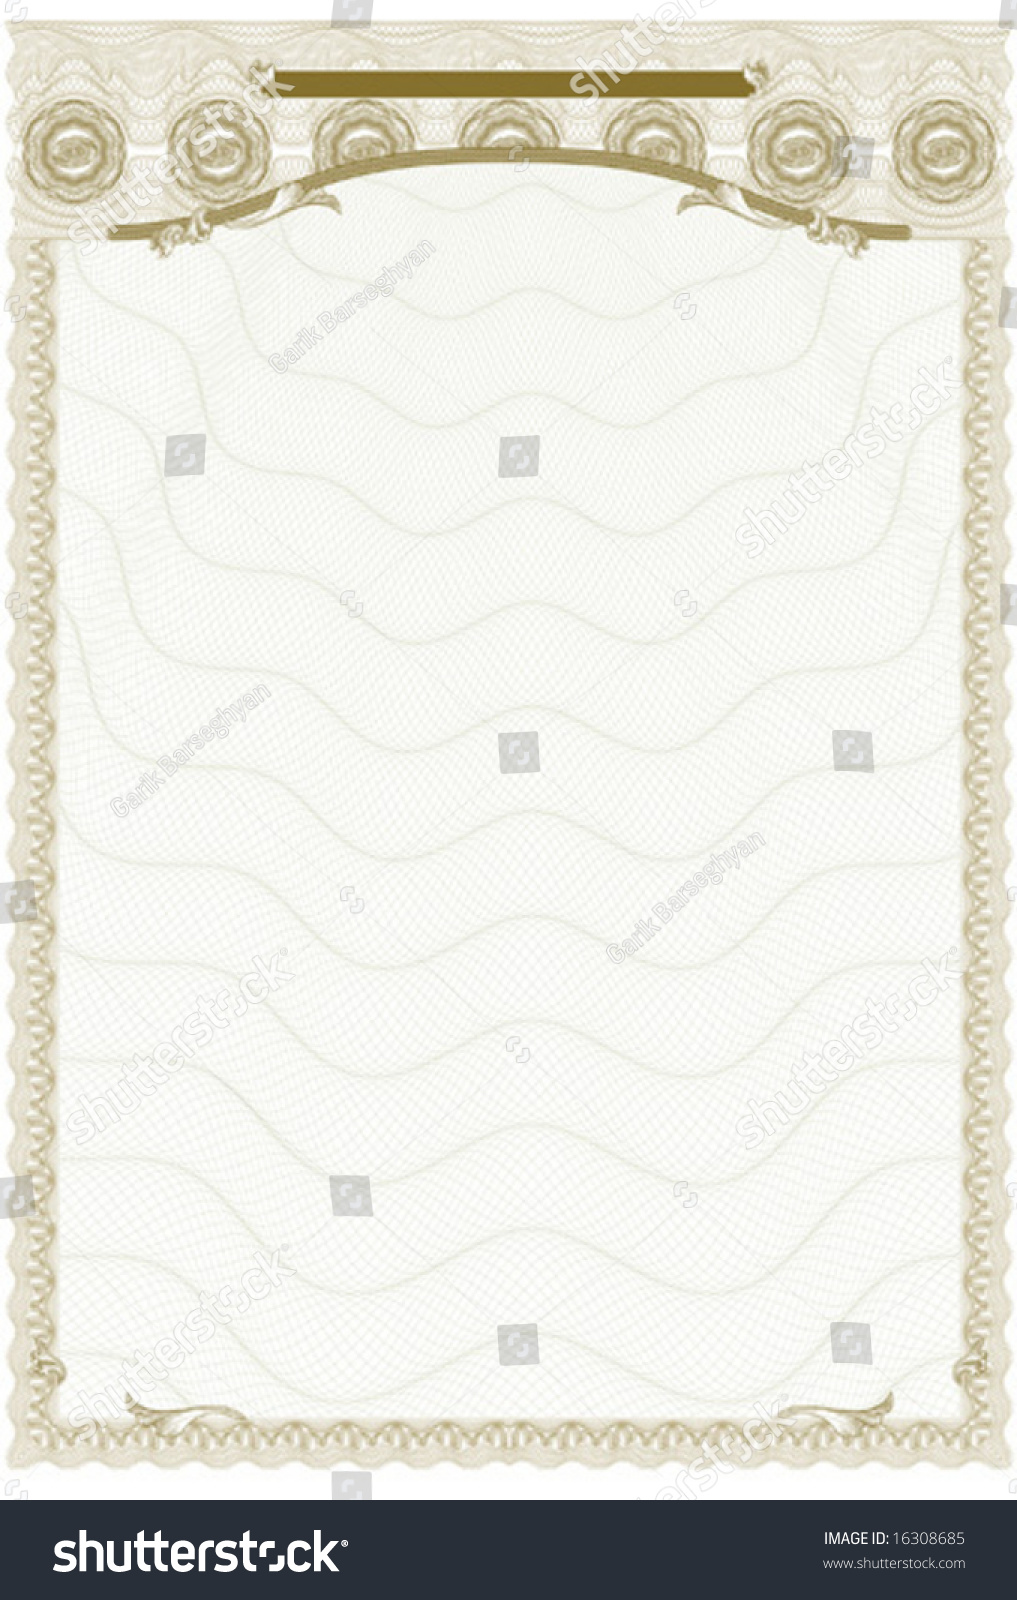 certificate diploma document background complex guilloche stock  certificate diploma document background complex guilloche elements